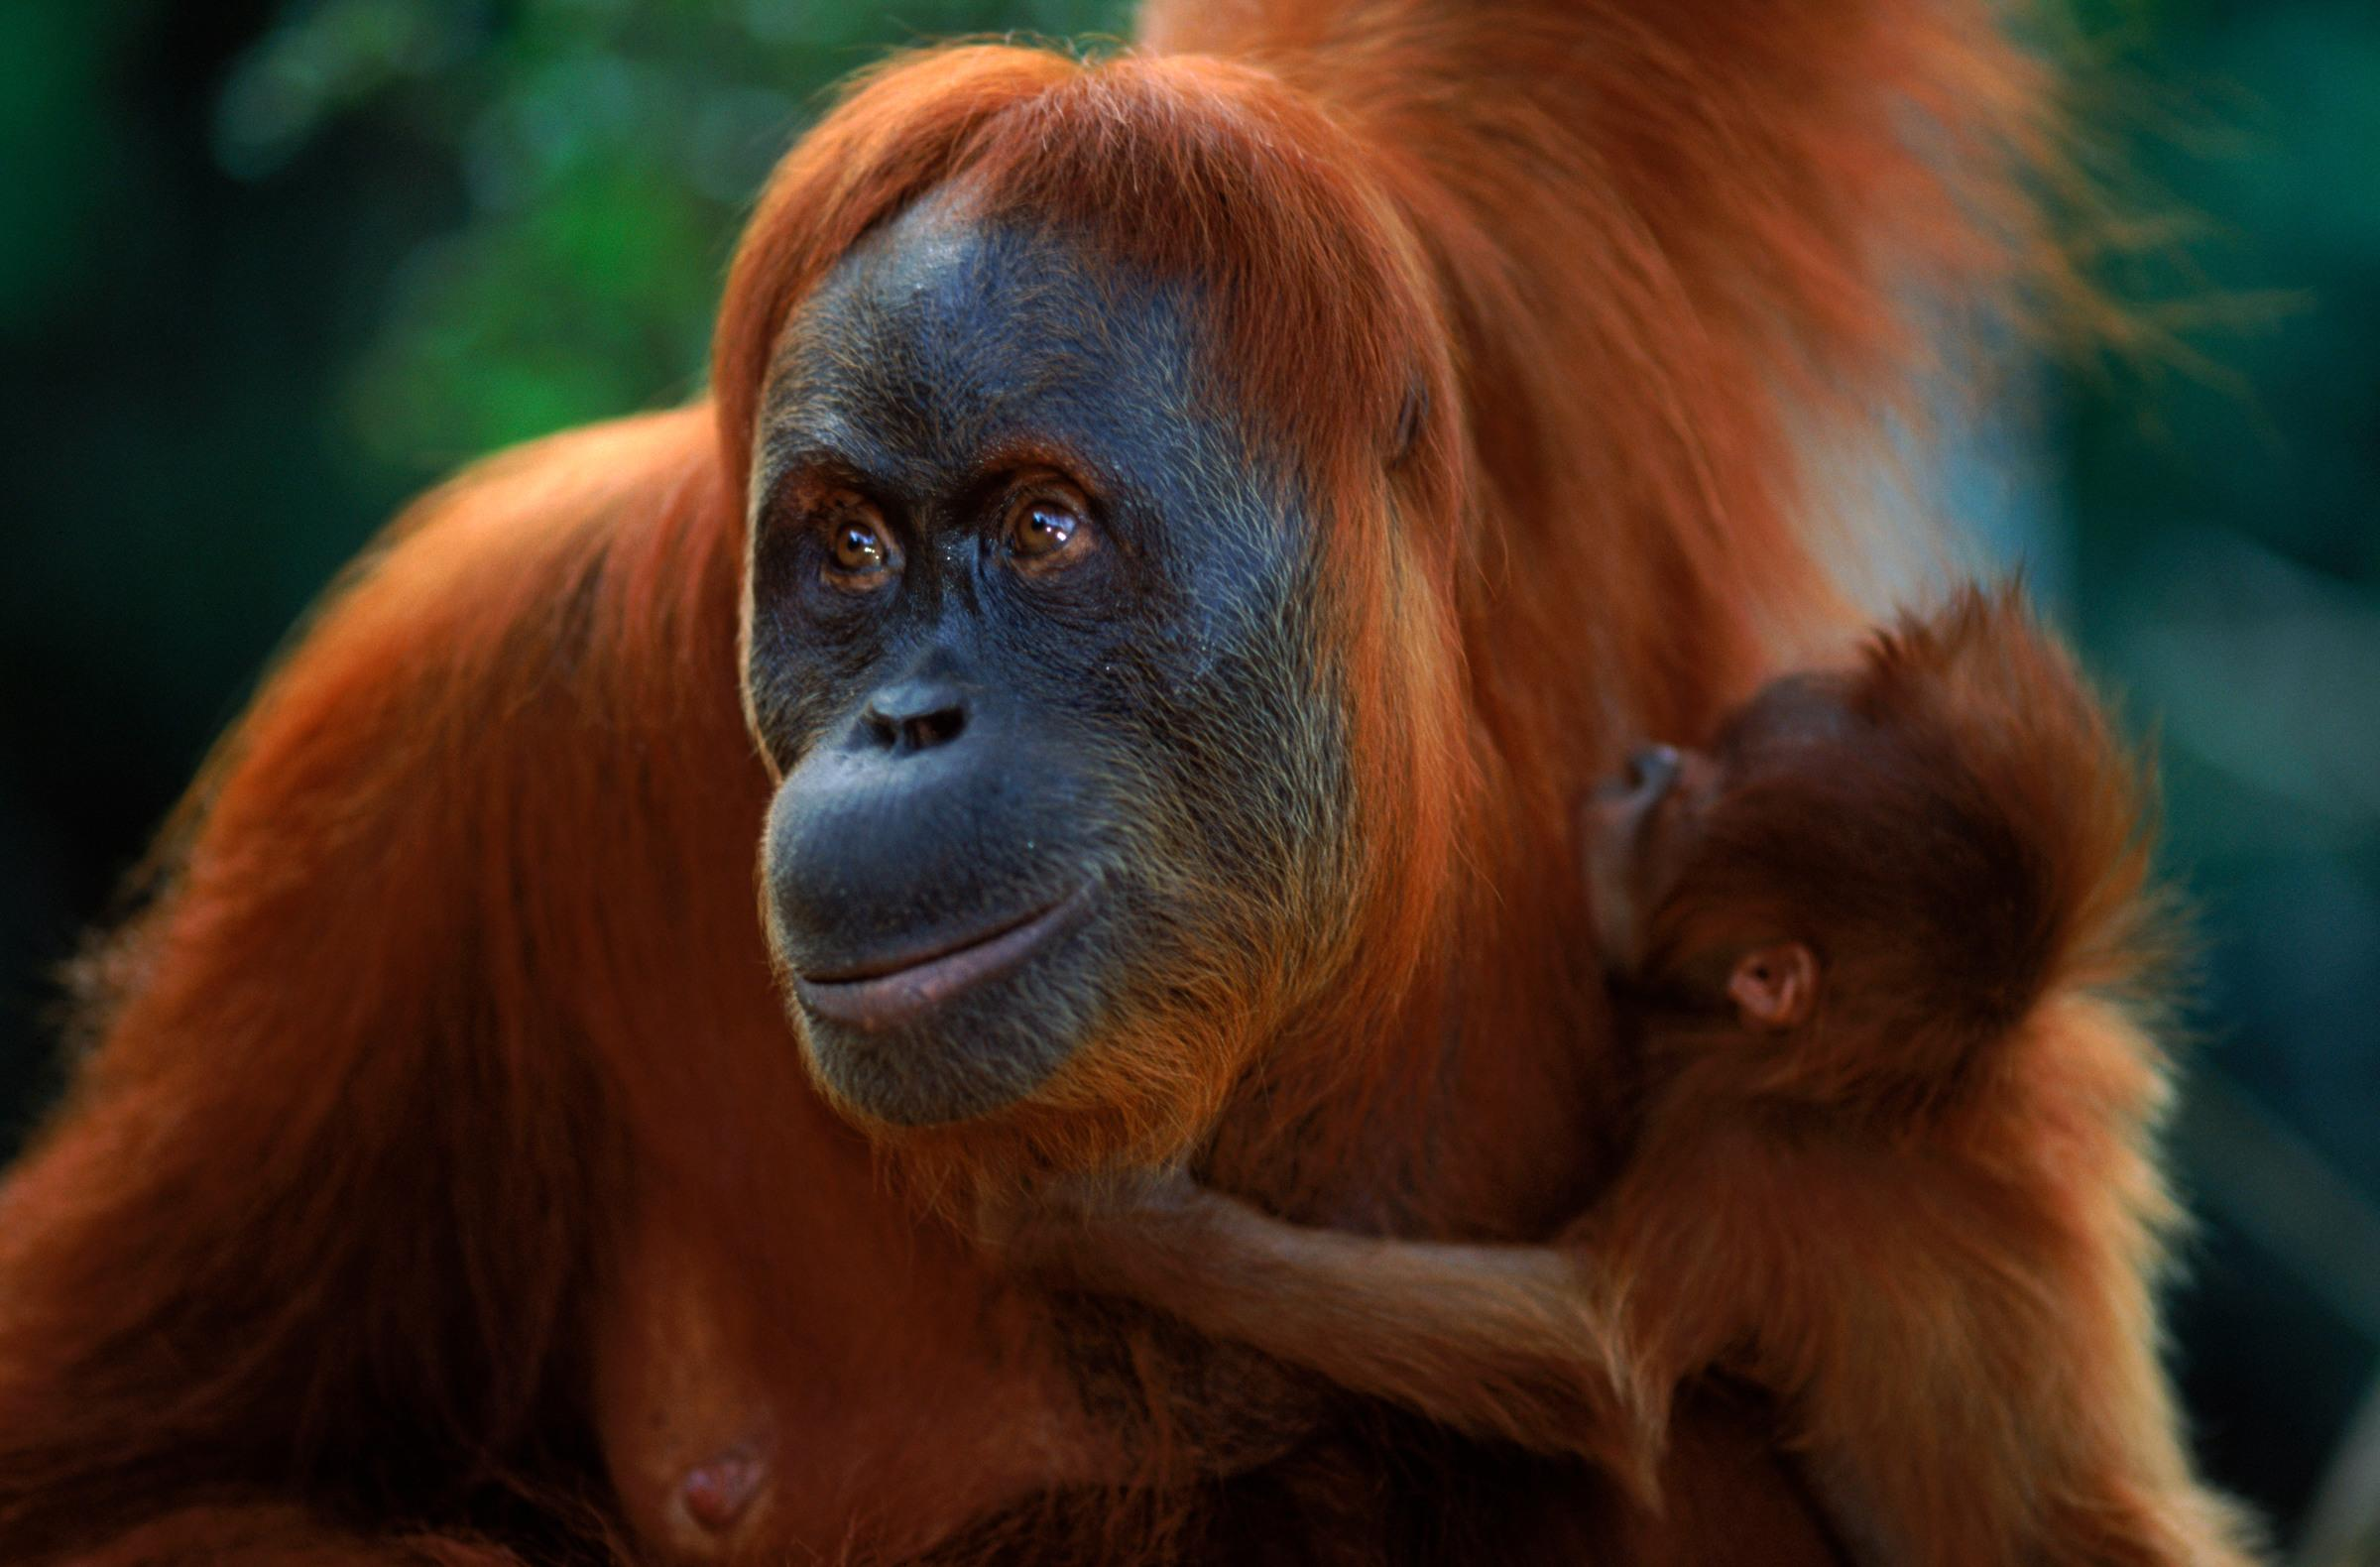 Top 10 facts about orangutans